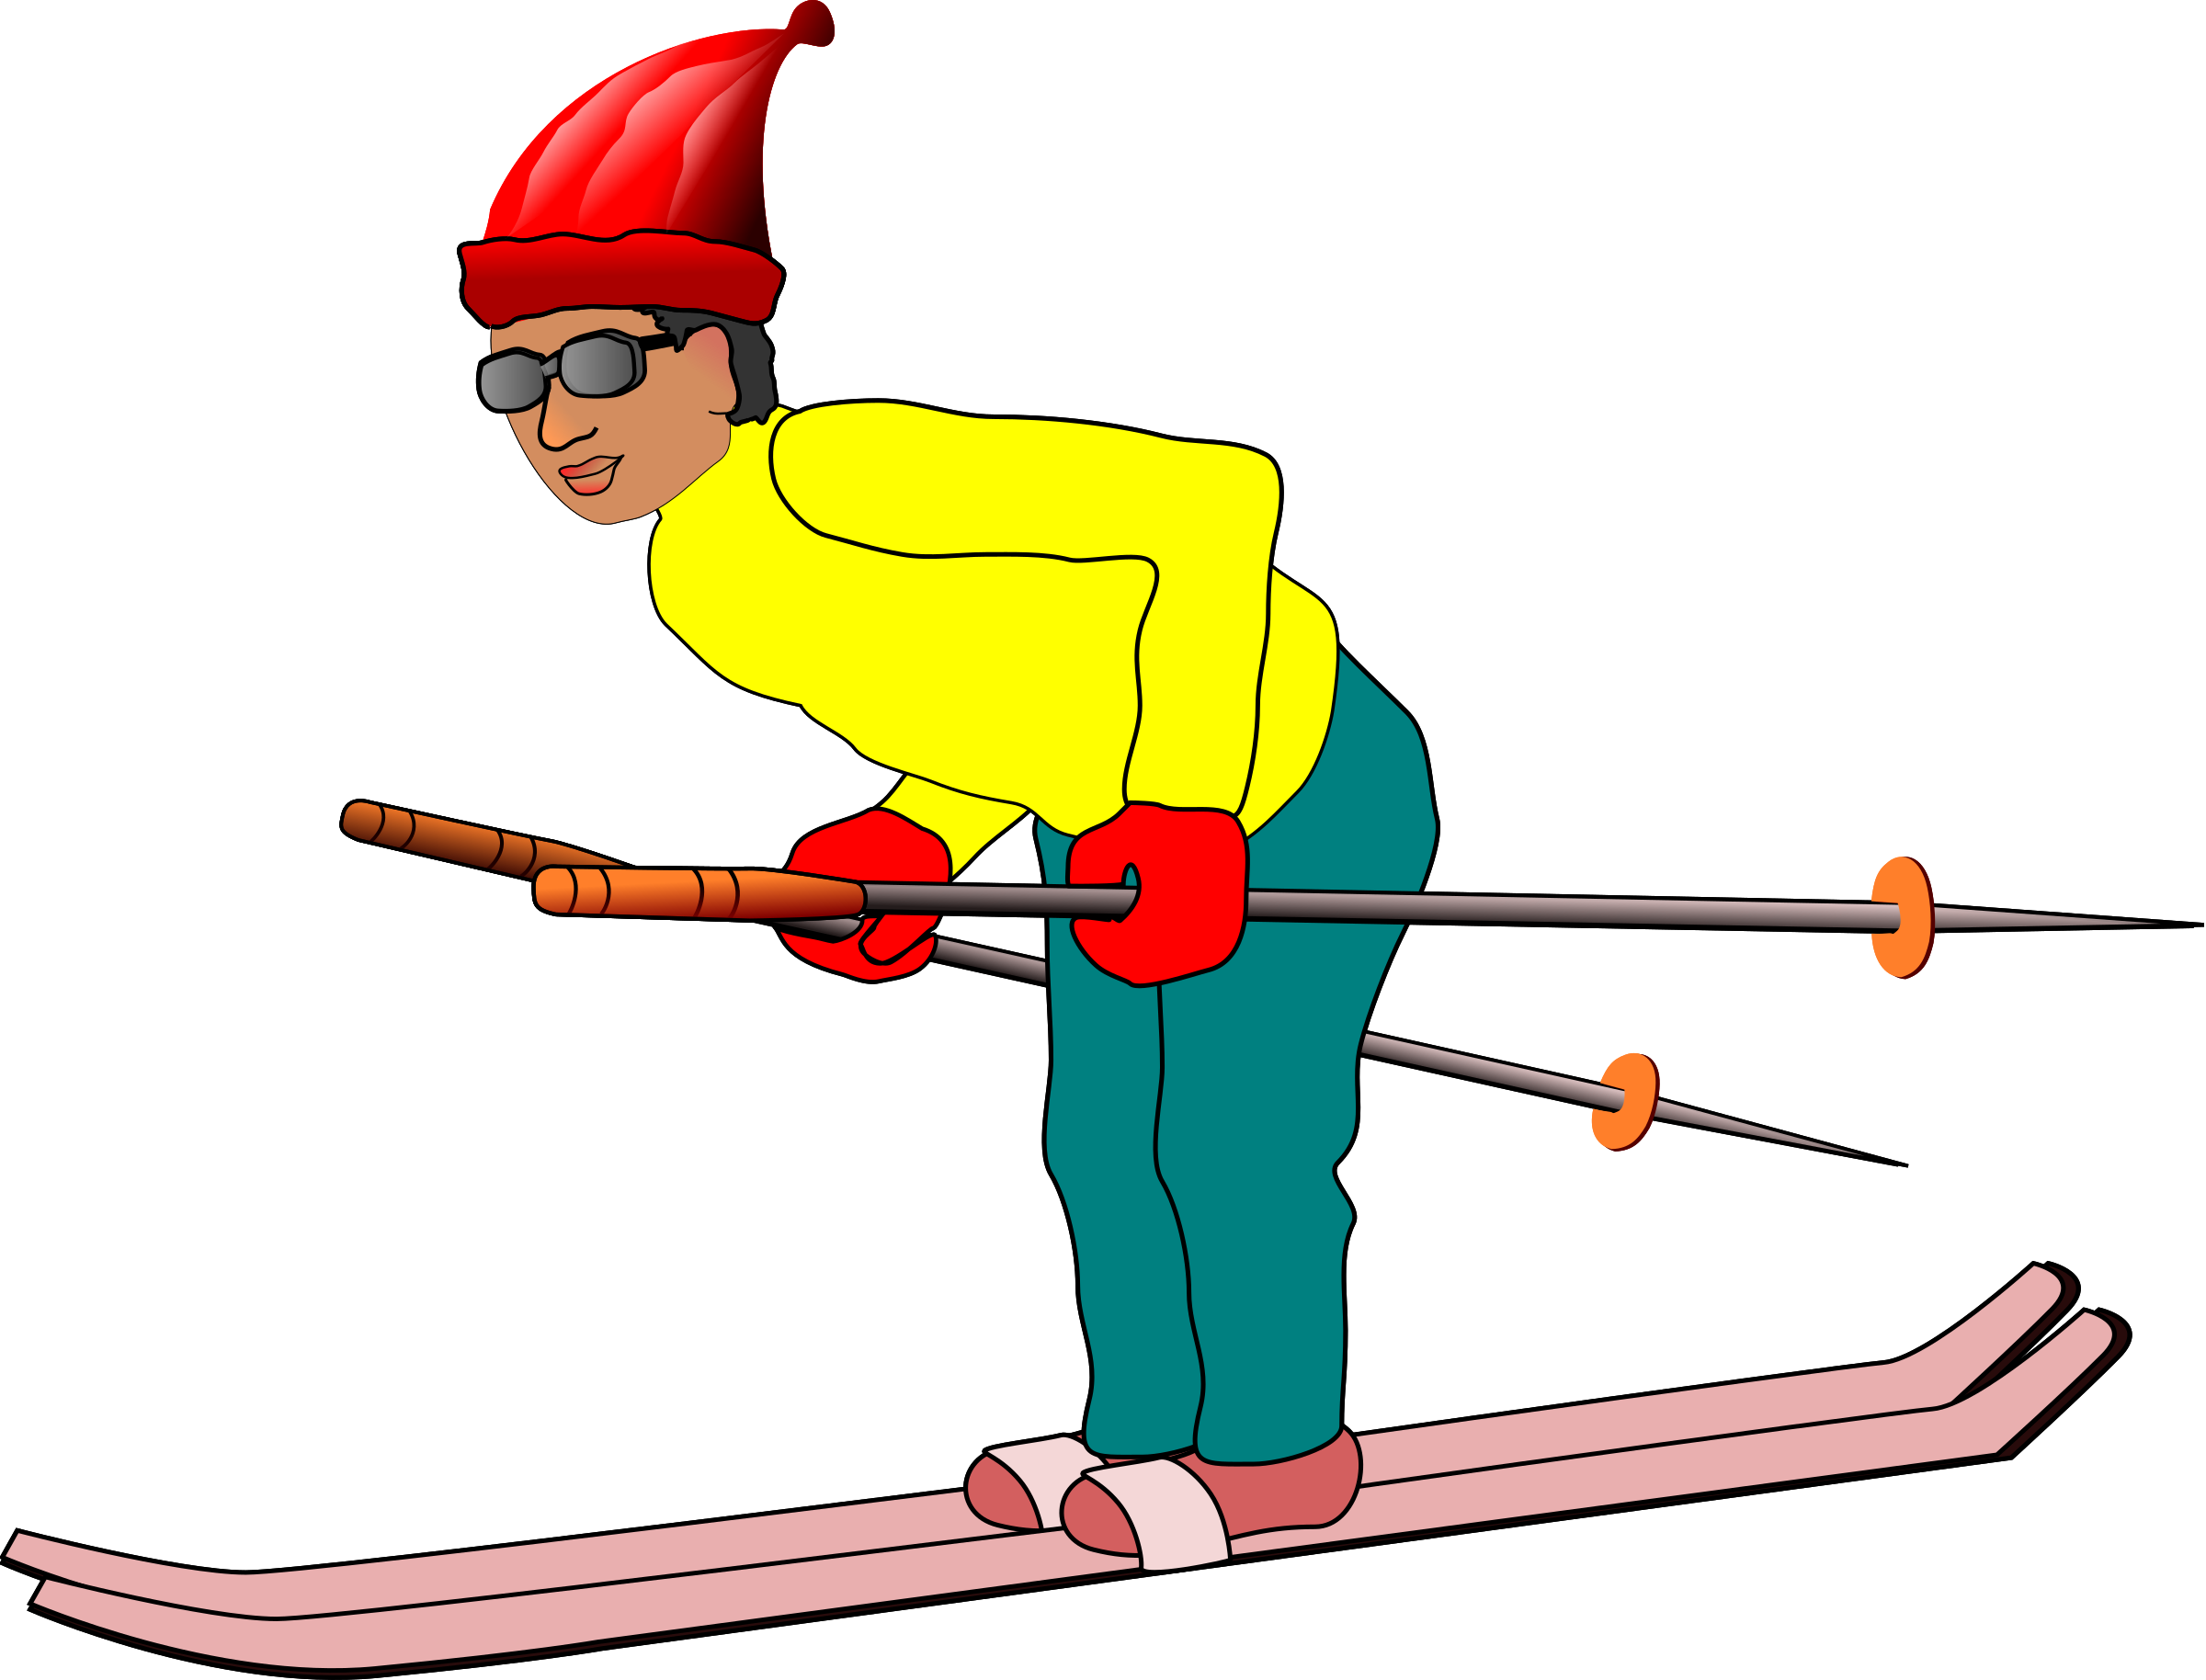 skier drawing guy